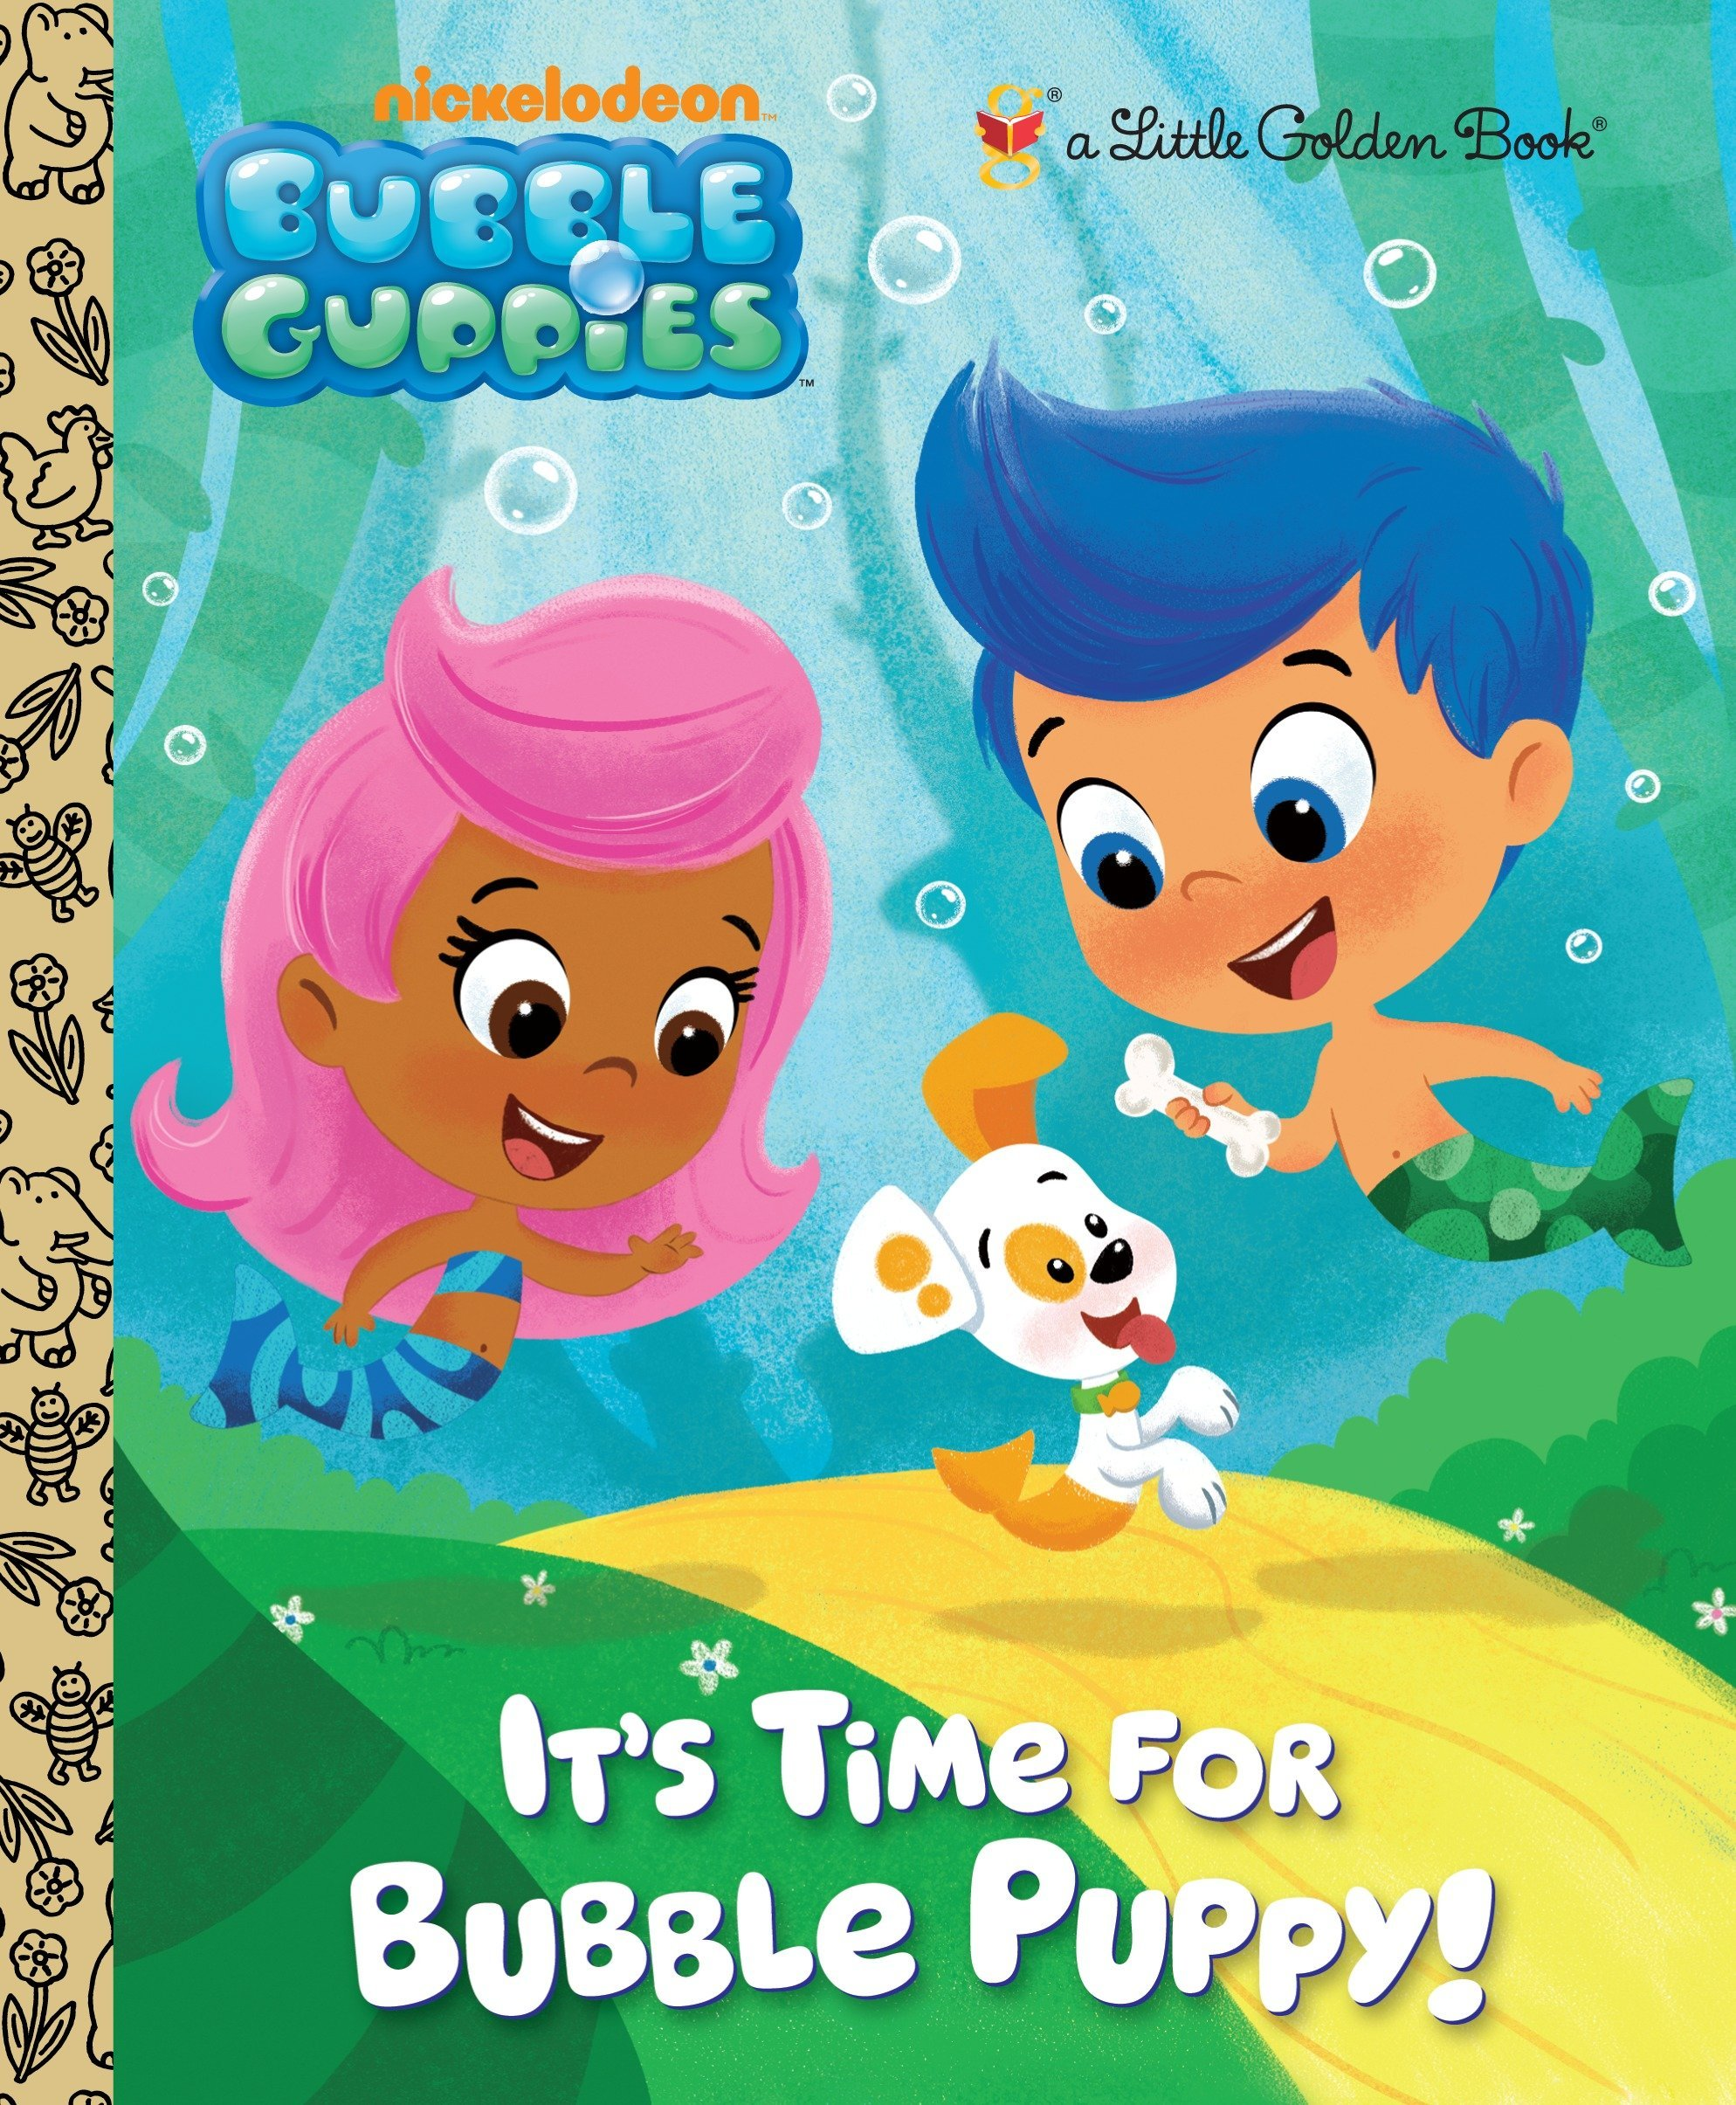 It's Time for Bubble Puppy! (Bubble Guppies) (Little Golden